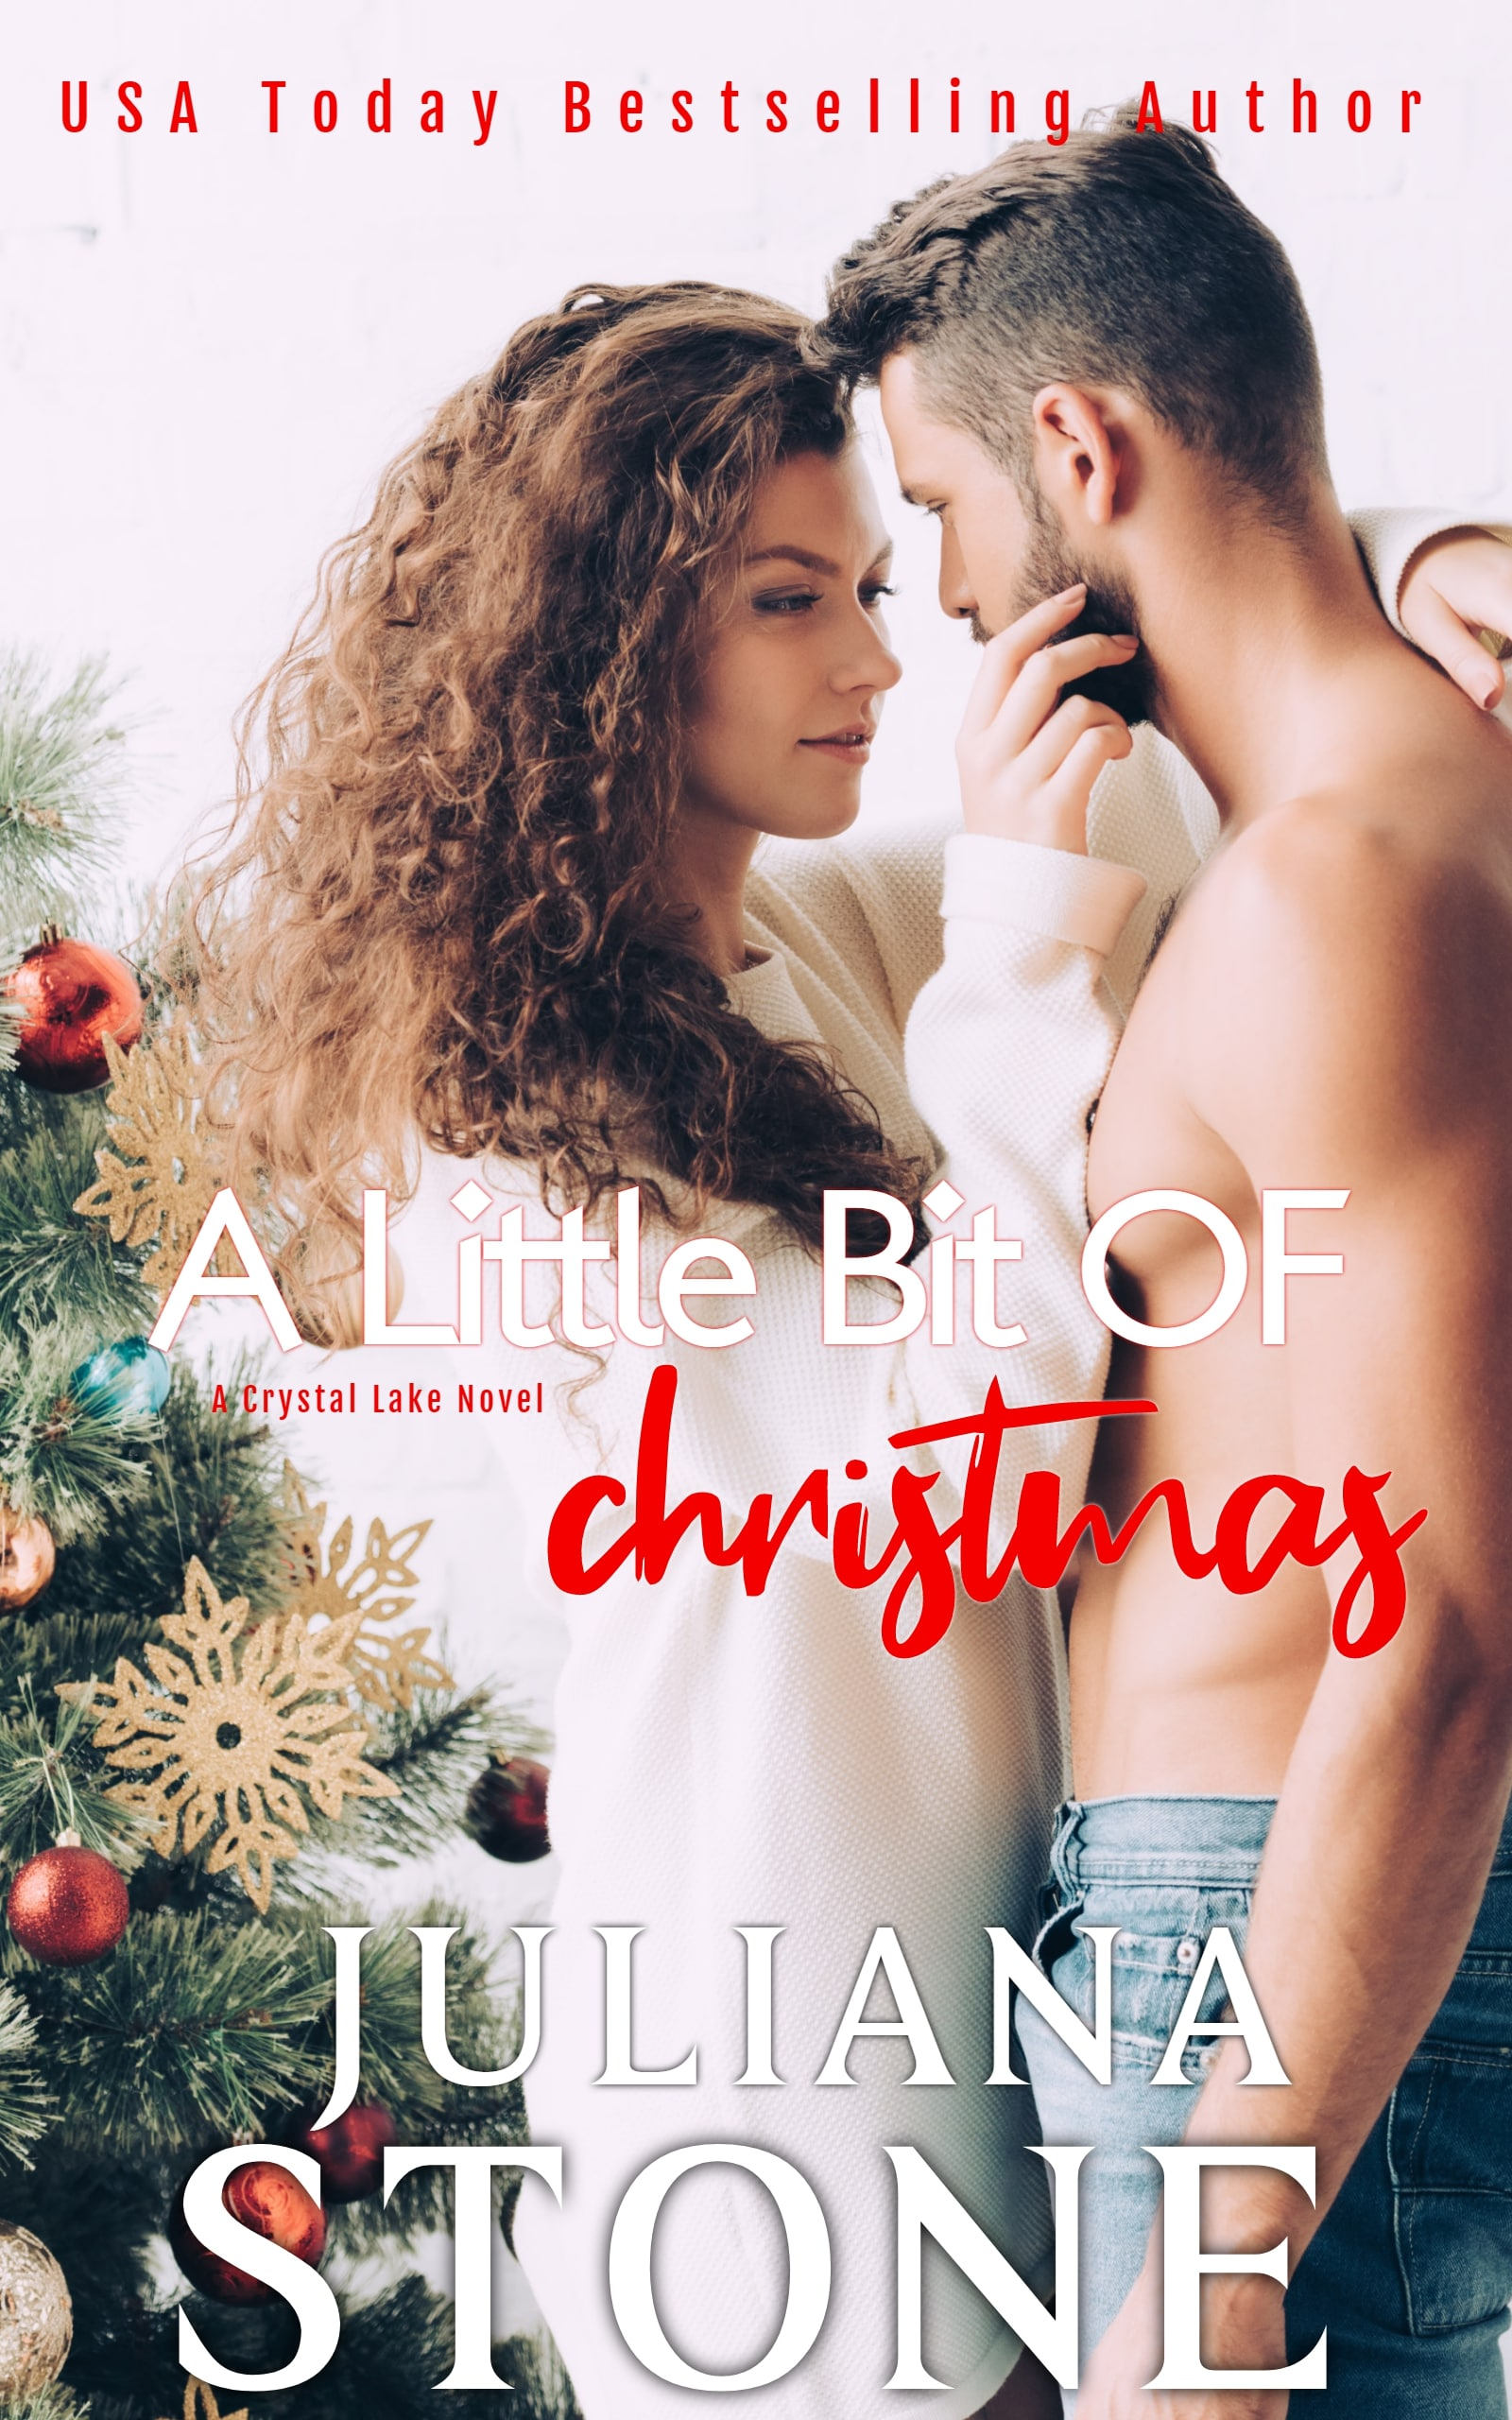 A Little Bit Of Christmas by Juliana Stone